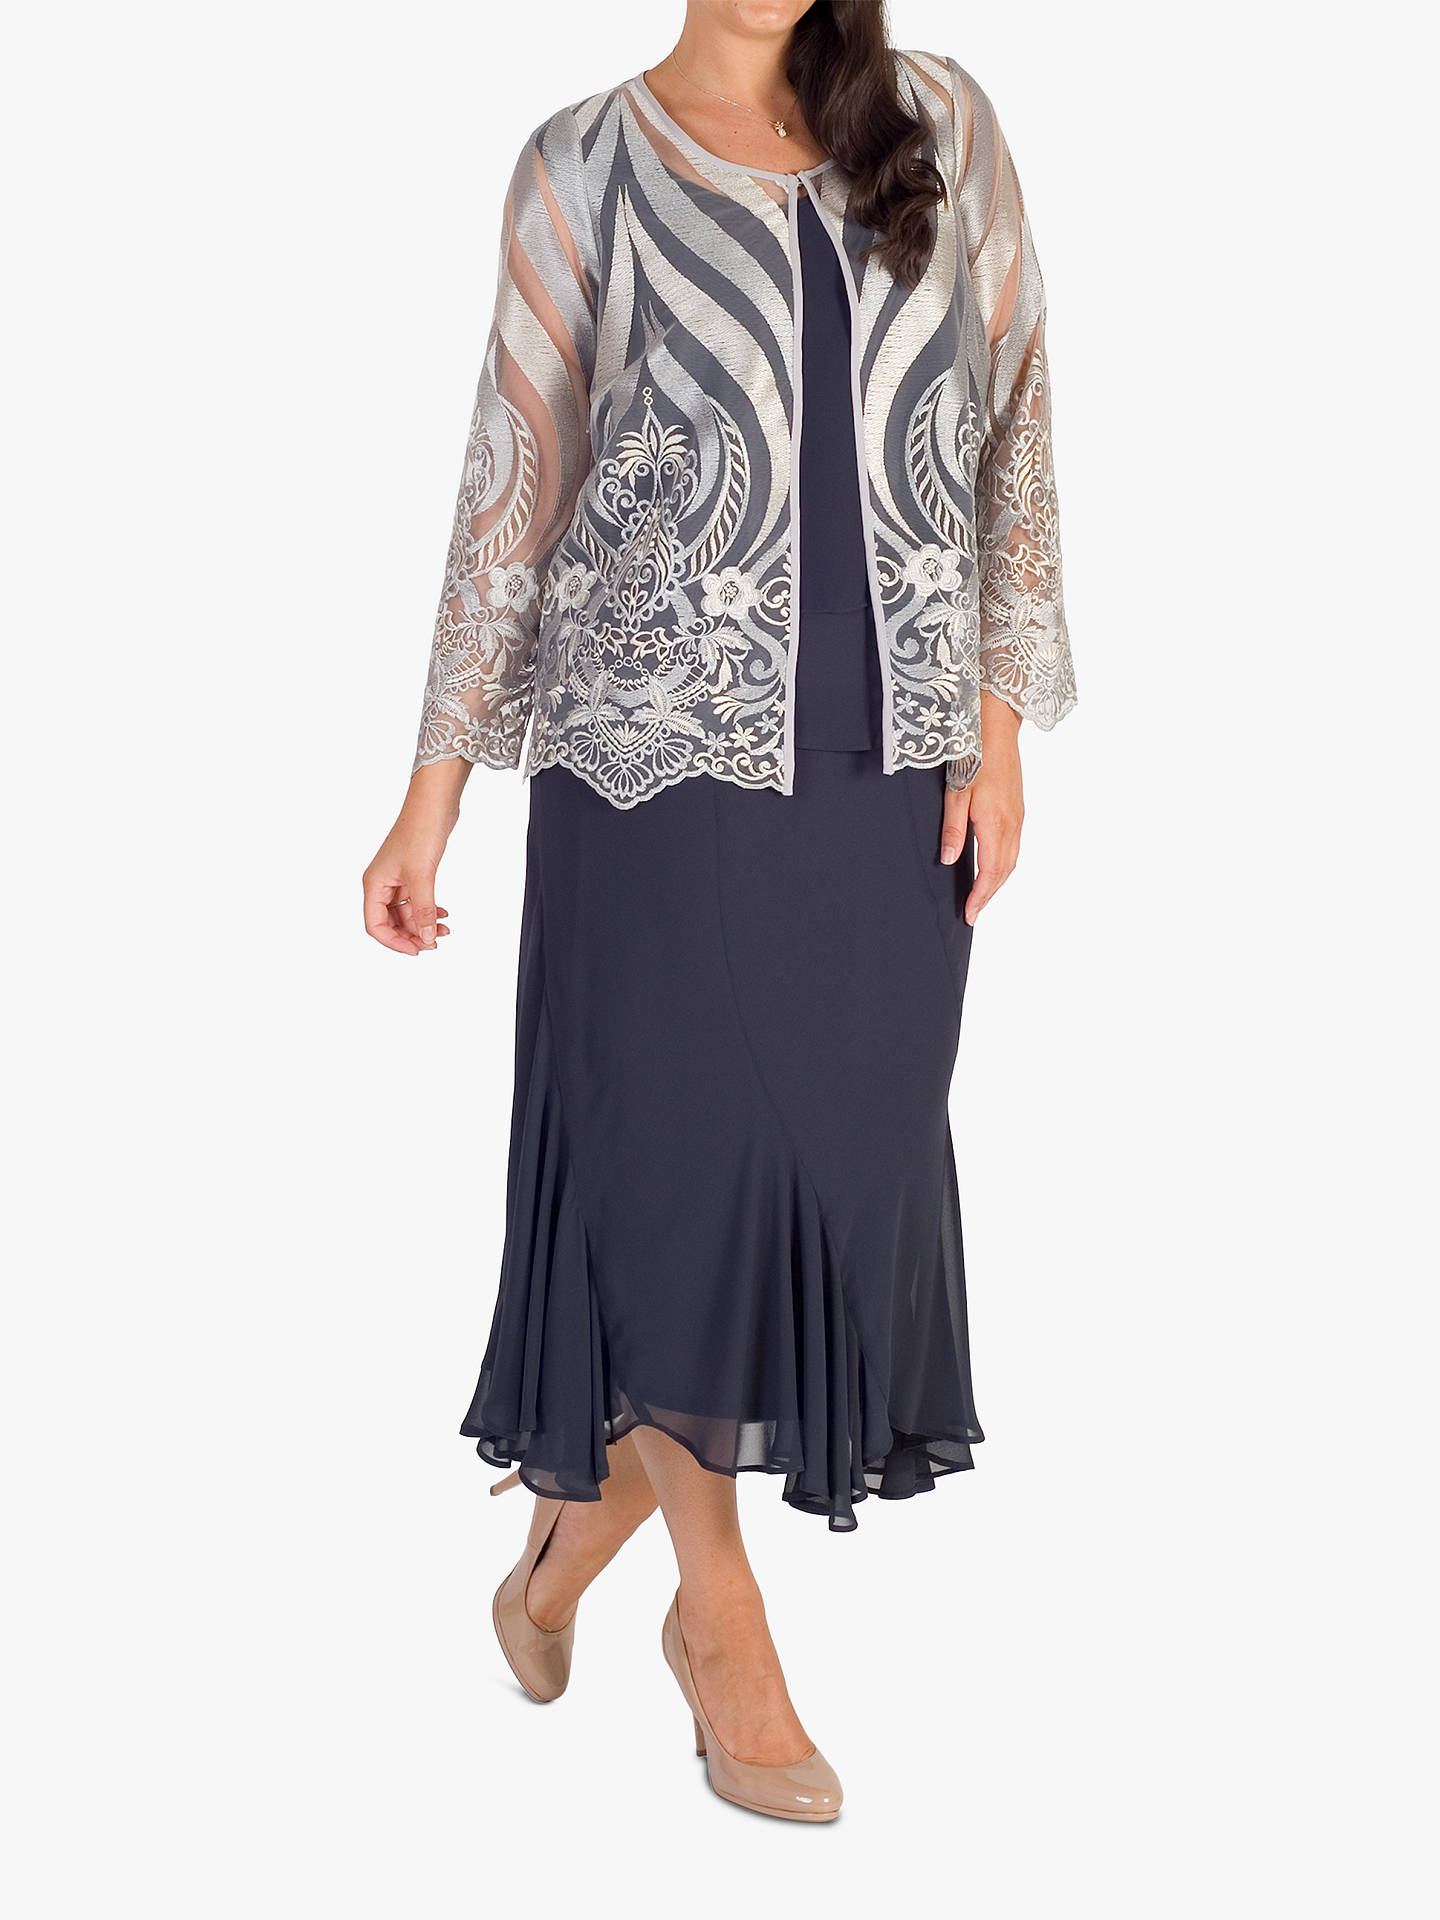 BuyChesca Wrap Top, Pewter, 14 Online at johnlewis.com